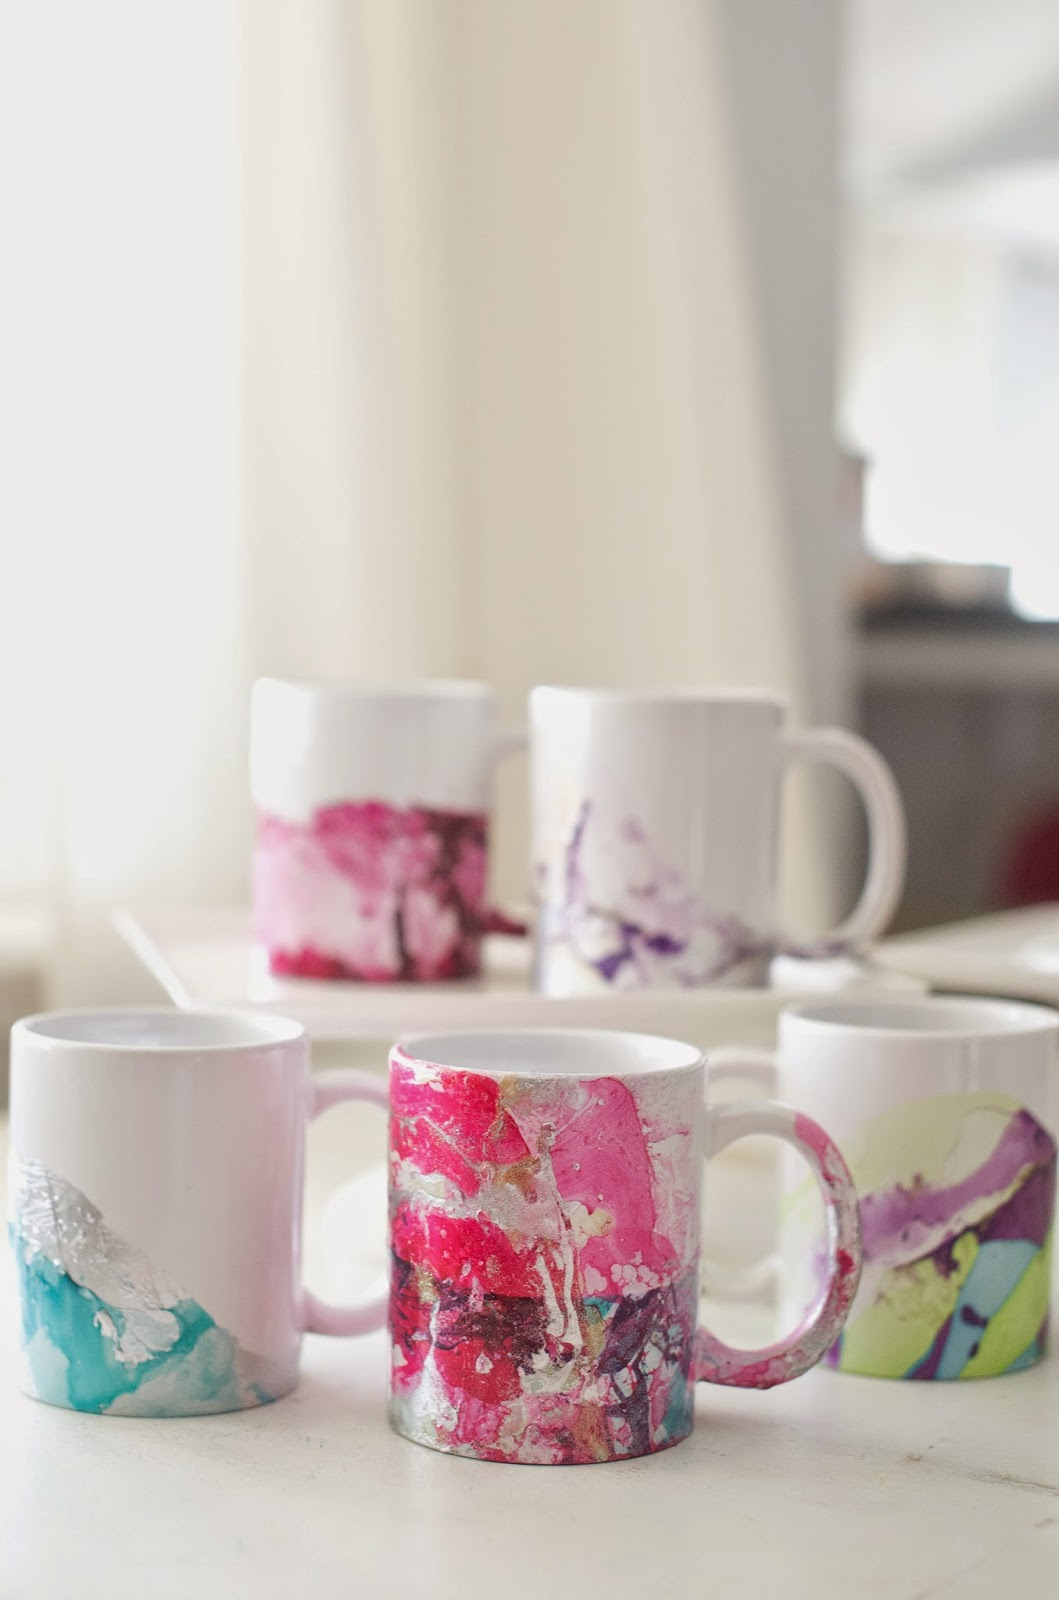 Domestic fashionista diy marbled nail polish coffee mugs diy marbled nail polish coffee mugs solutioingenieria Image collections